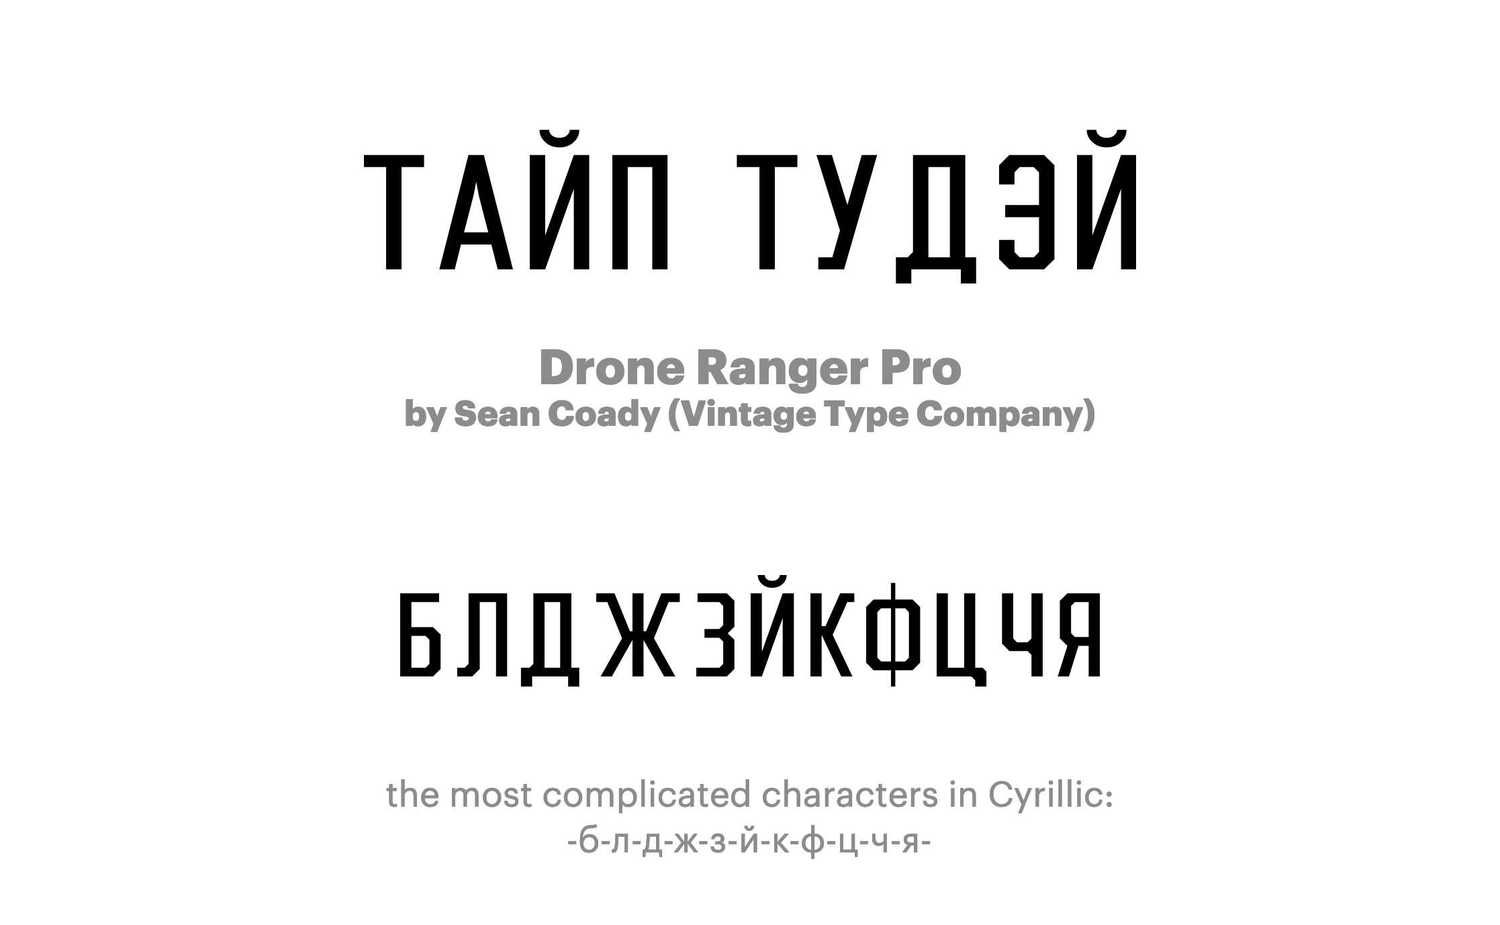 Drone-Ranger-Pro-by-Sean-Coady-(Vintage-Type-Company)